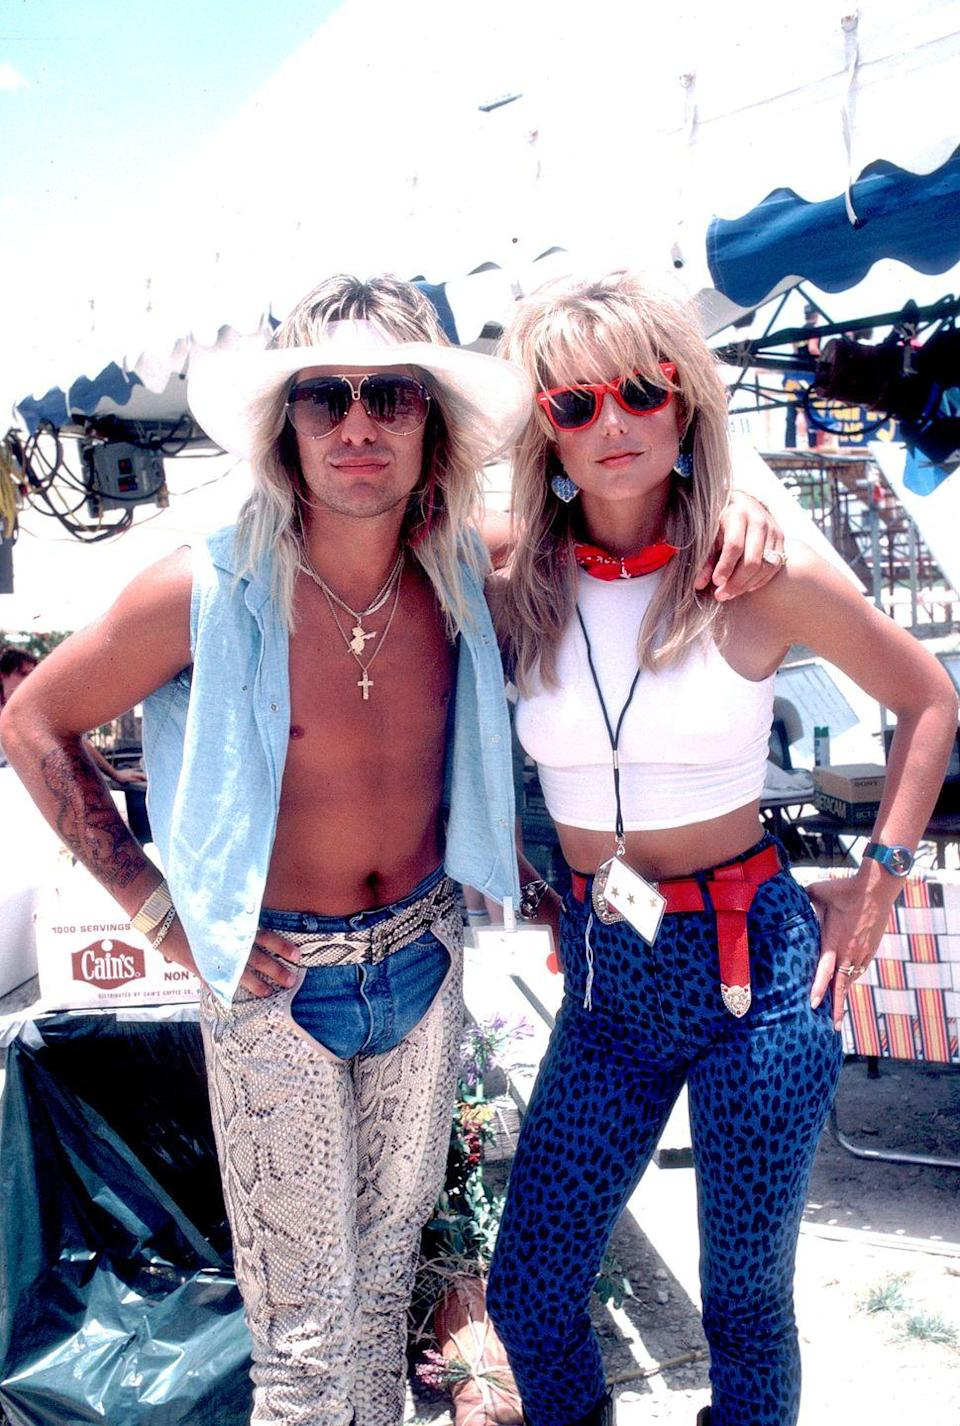 <p>Neil and actress Heather Thomas at Farm Aid 2 in Austin, Texas in 1986. The performance was aired live on VH1 and millions of viewers tuned in to watch performances by Alabama, Stevie Ray Vaughan, The Beach Boys, and more.</p>